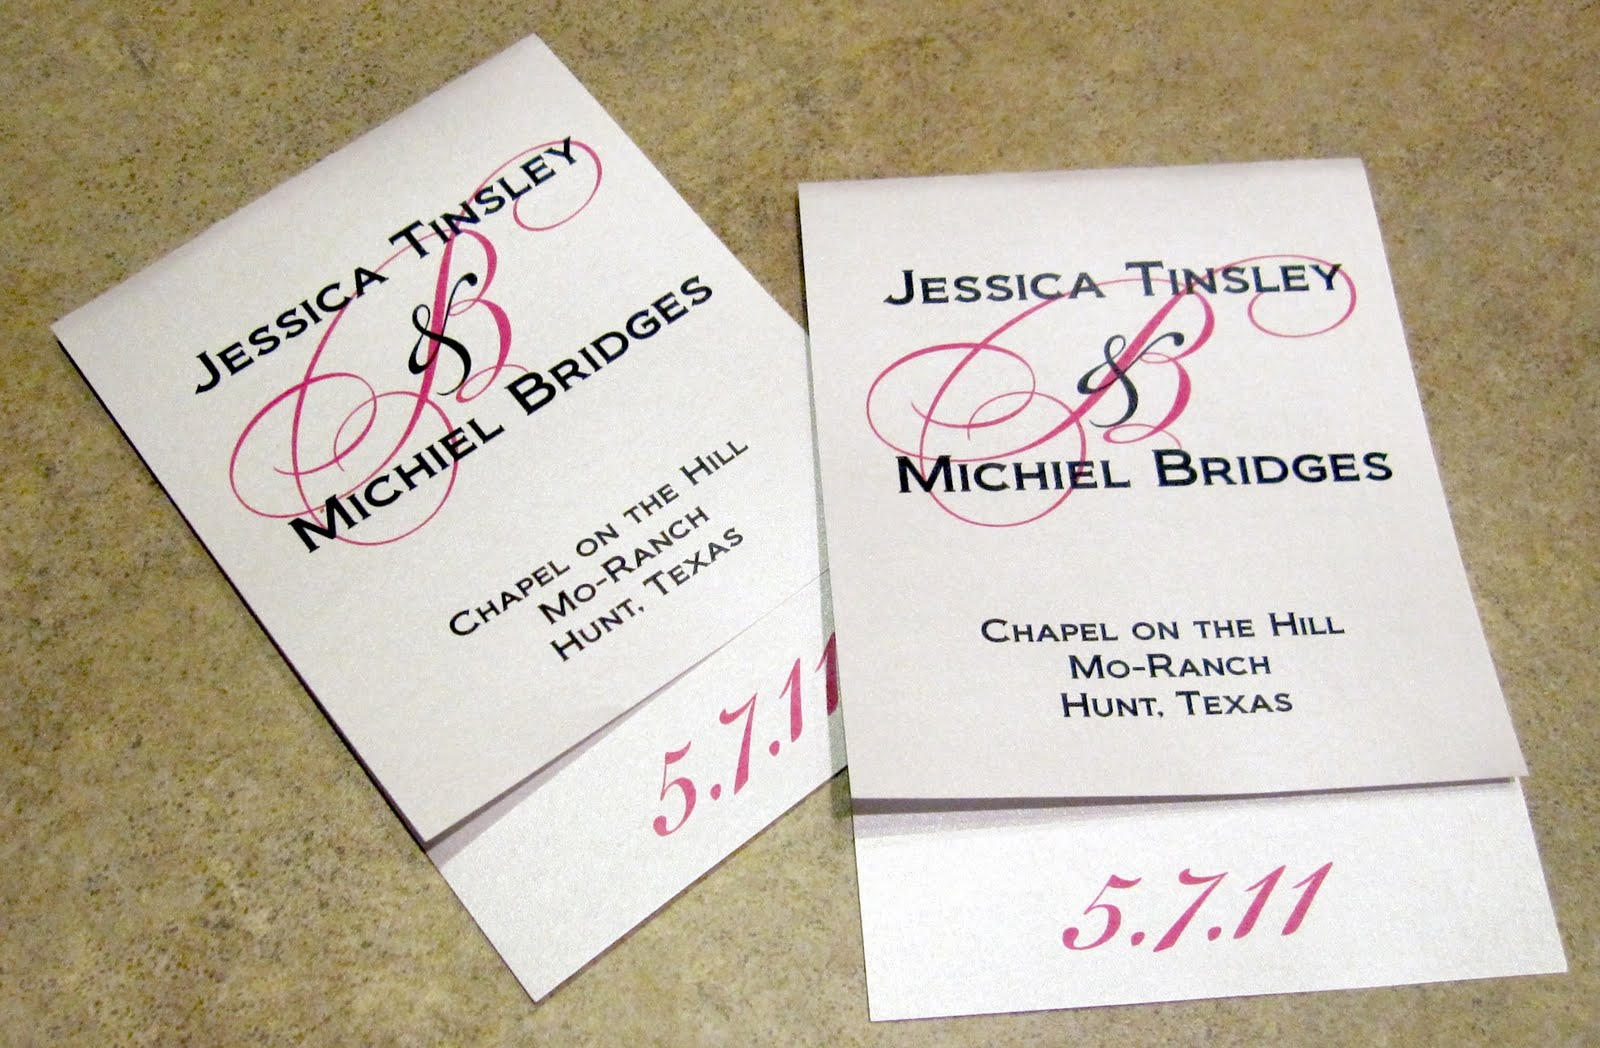 Scrapping Innovations: Jessica and Michiel offset wedding programs